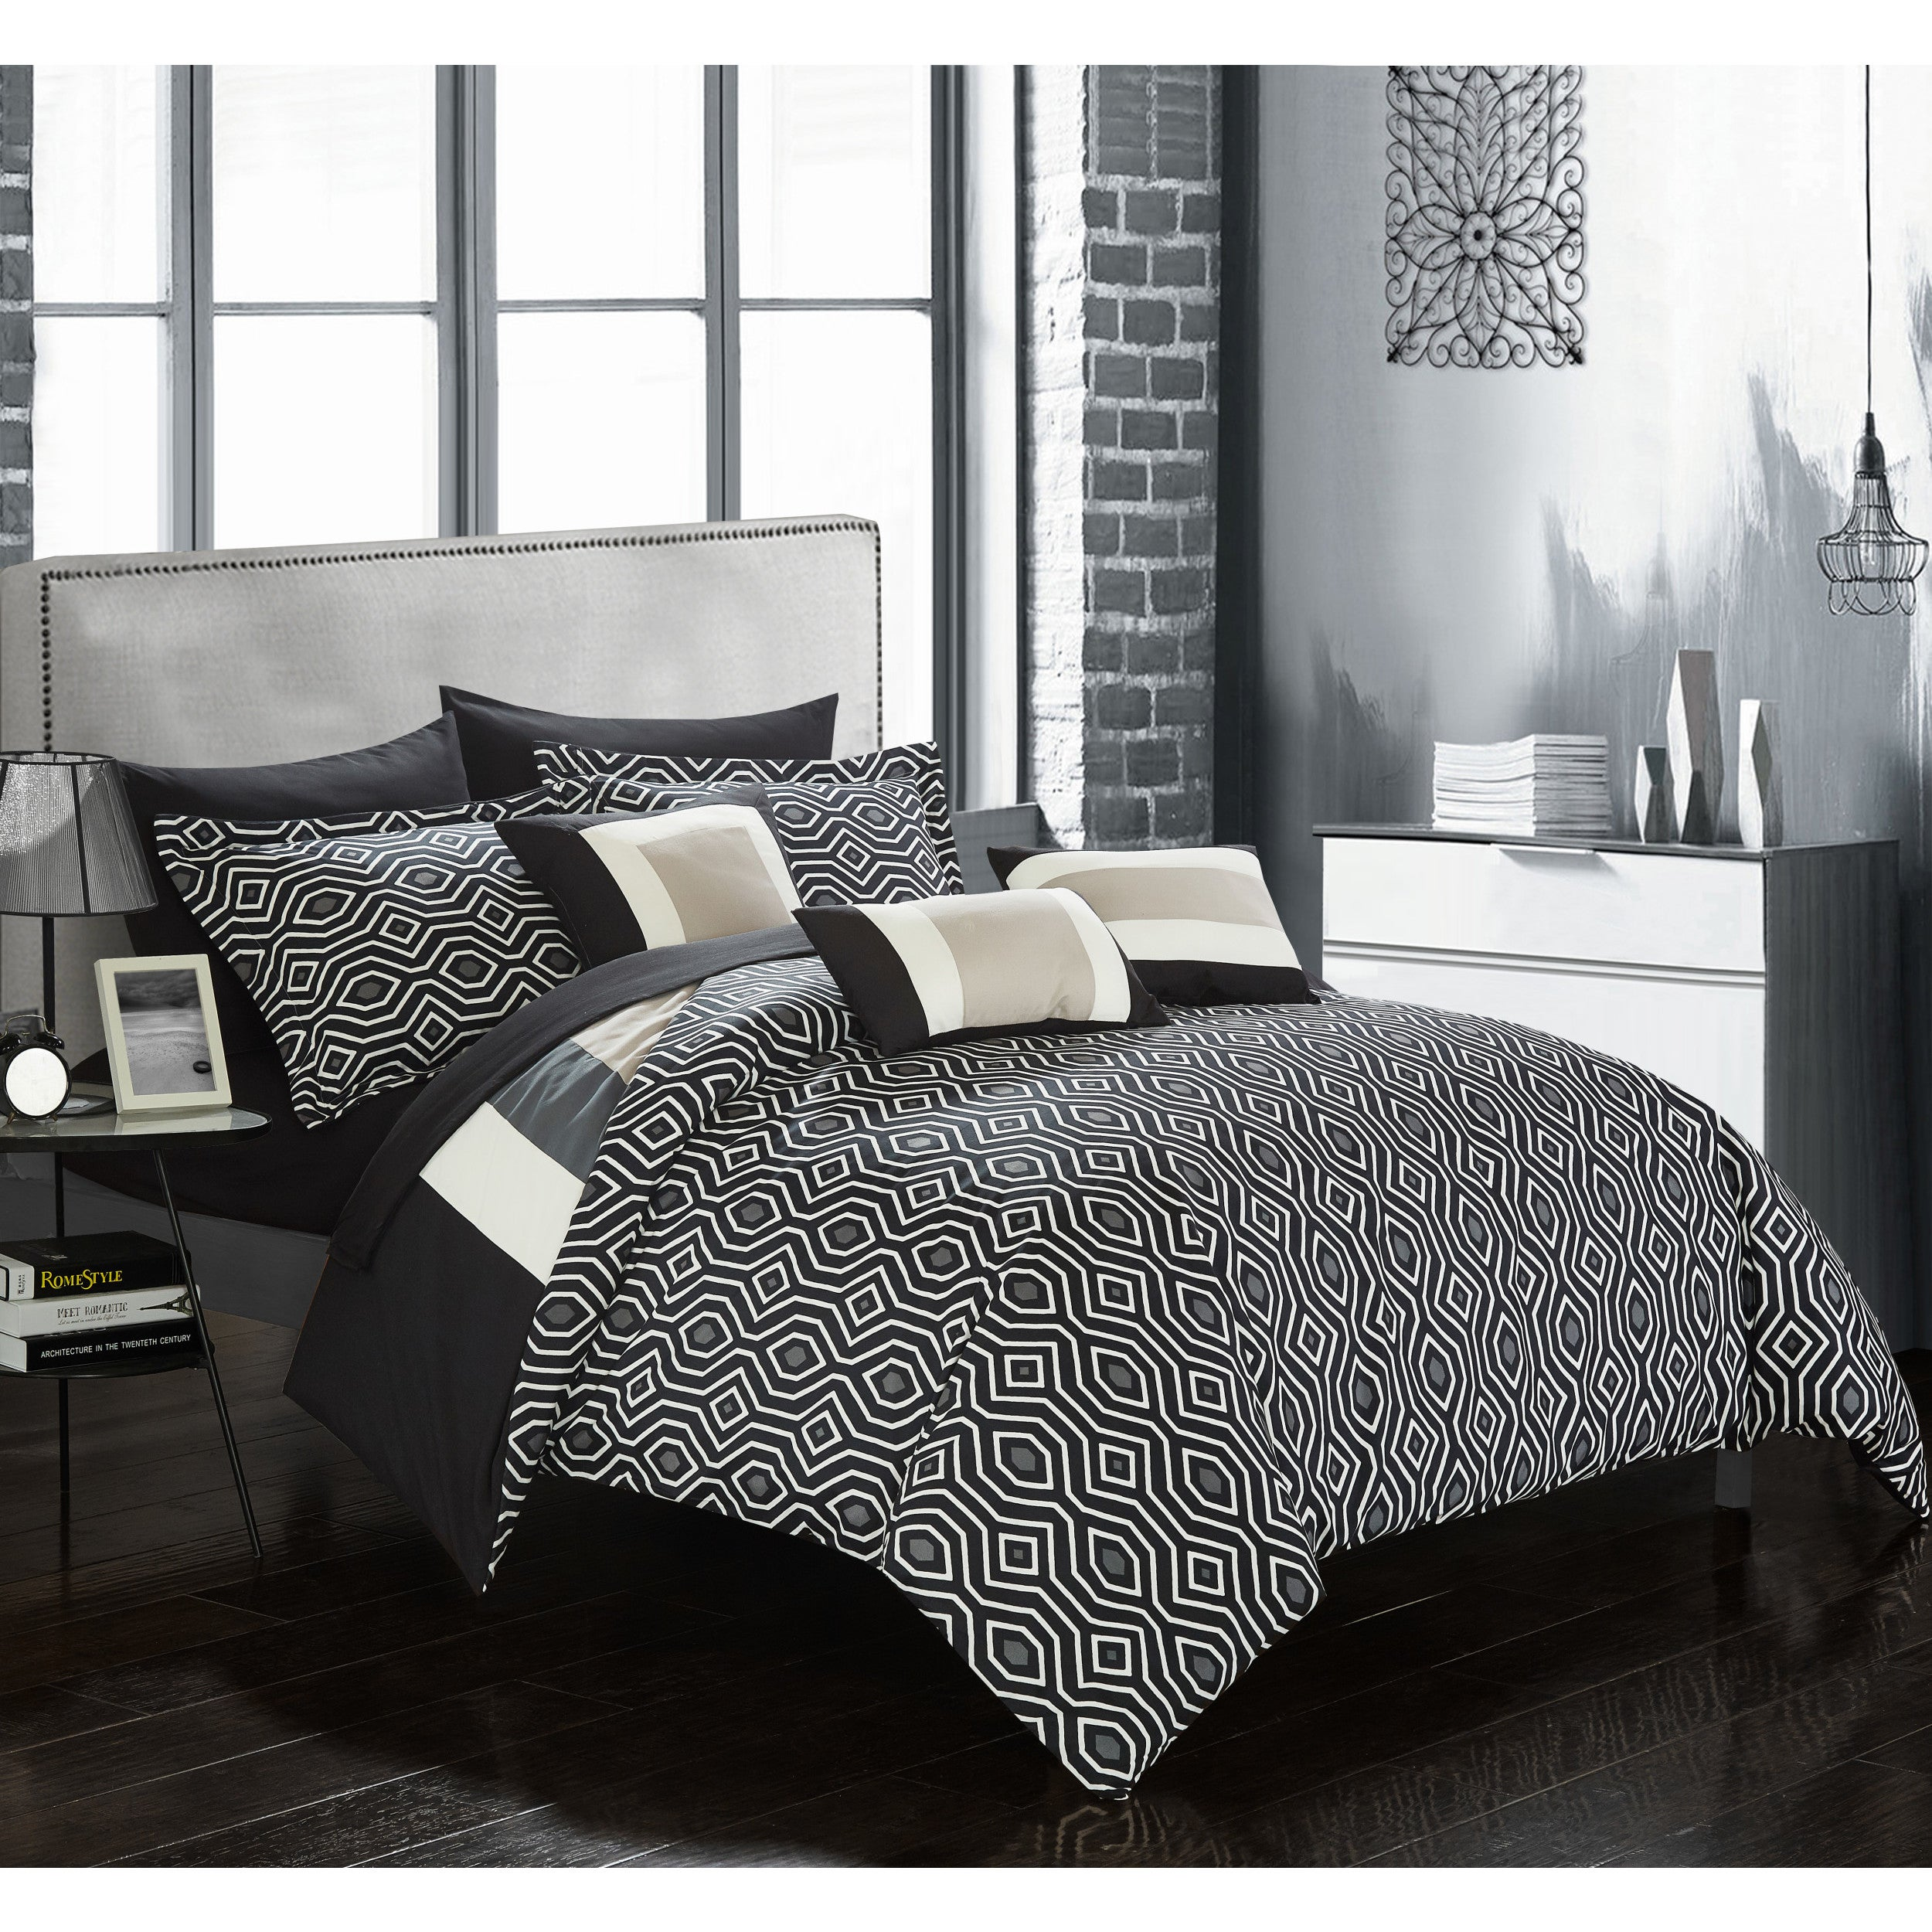 new ensembles full of hotel setscomforter king comfort comforter size and biltmore at york bedding sets pictures breathtaking wayfair concept touch luxery comforters class